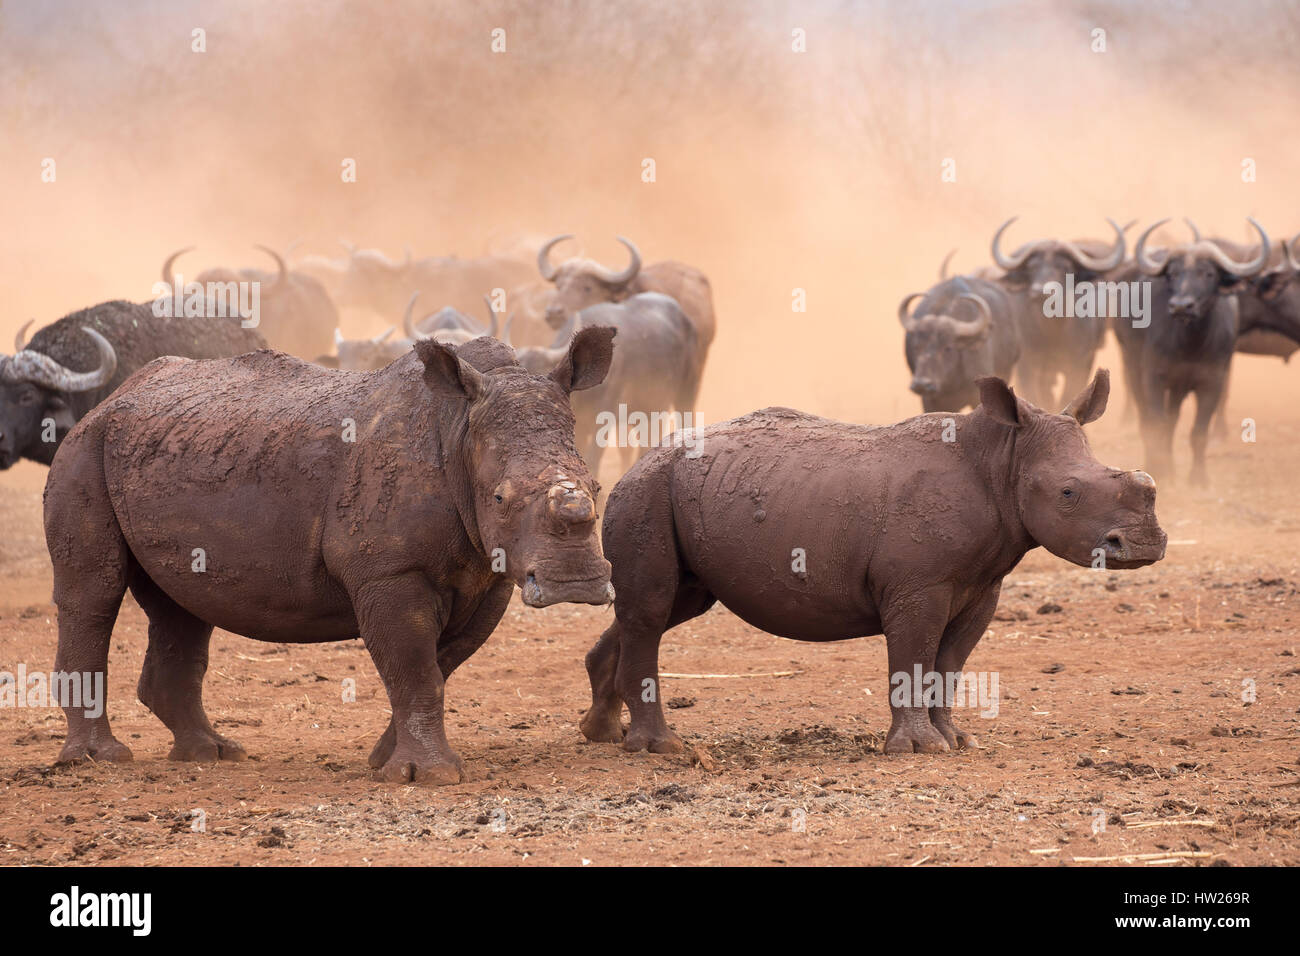 White rhino (Ceratotherium simum) and calf, dehorned, Zimanga private game reserve, KwaZulu Natal, South Africa, - Stock Image